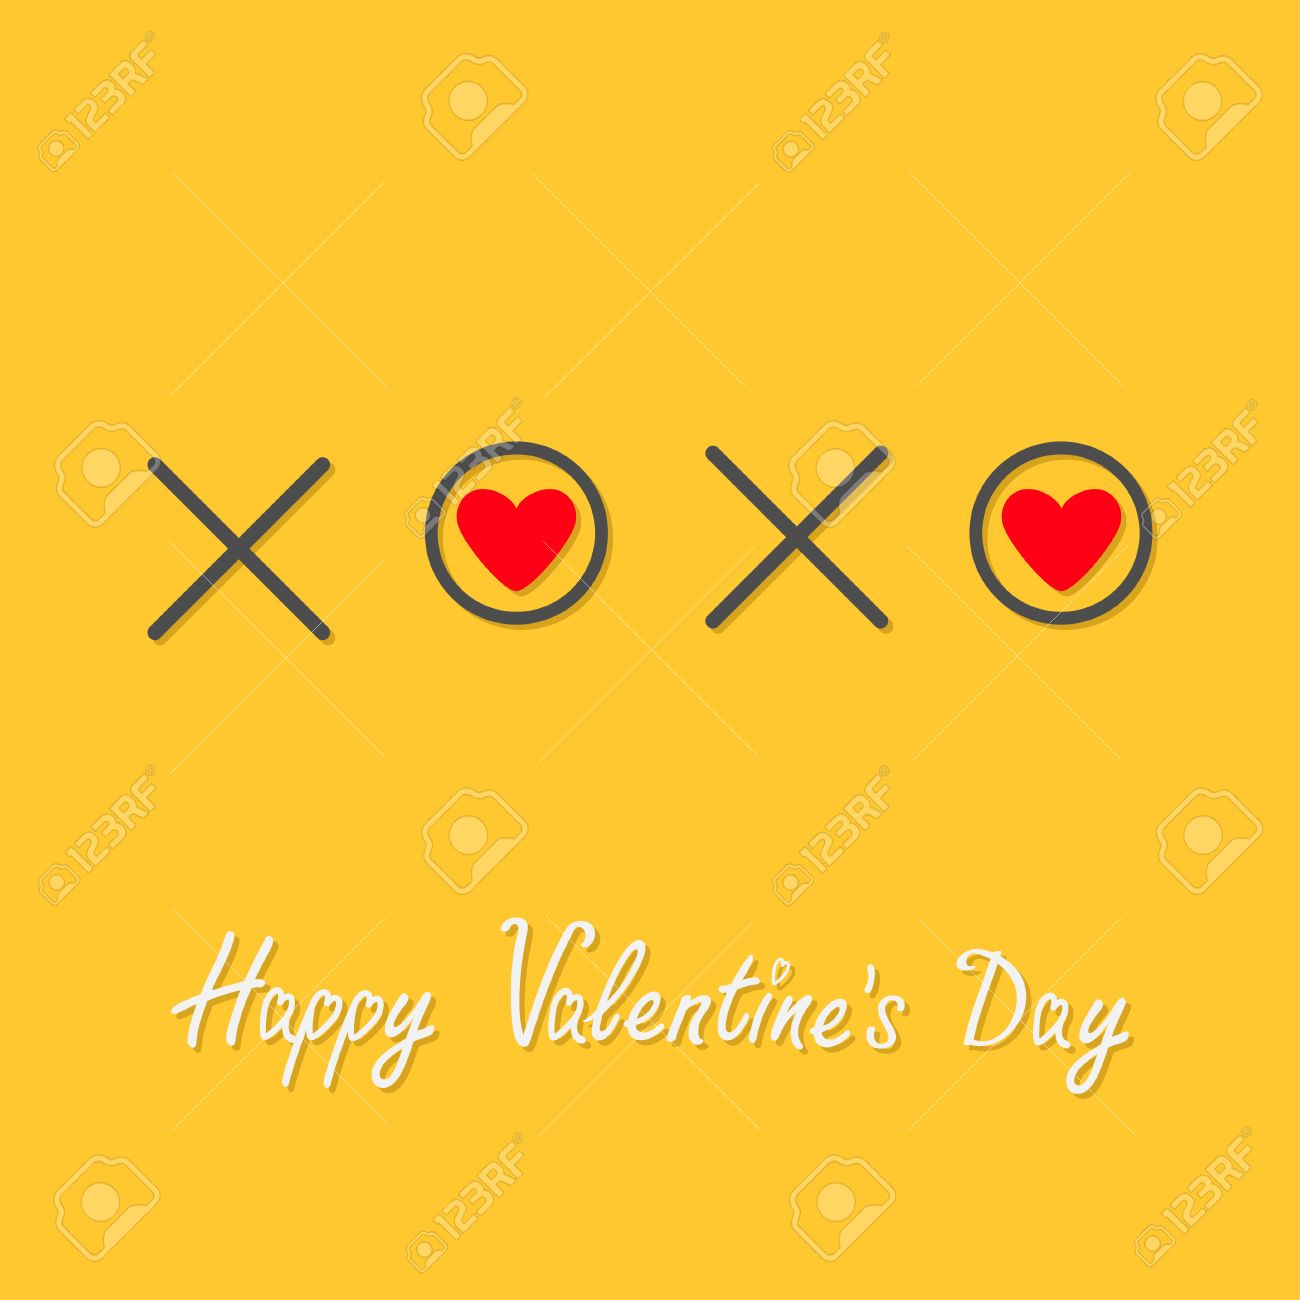 Xoxo Hugs And Kisses Sign Symbol Mark Love Red Heart Word Text